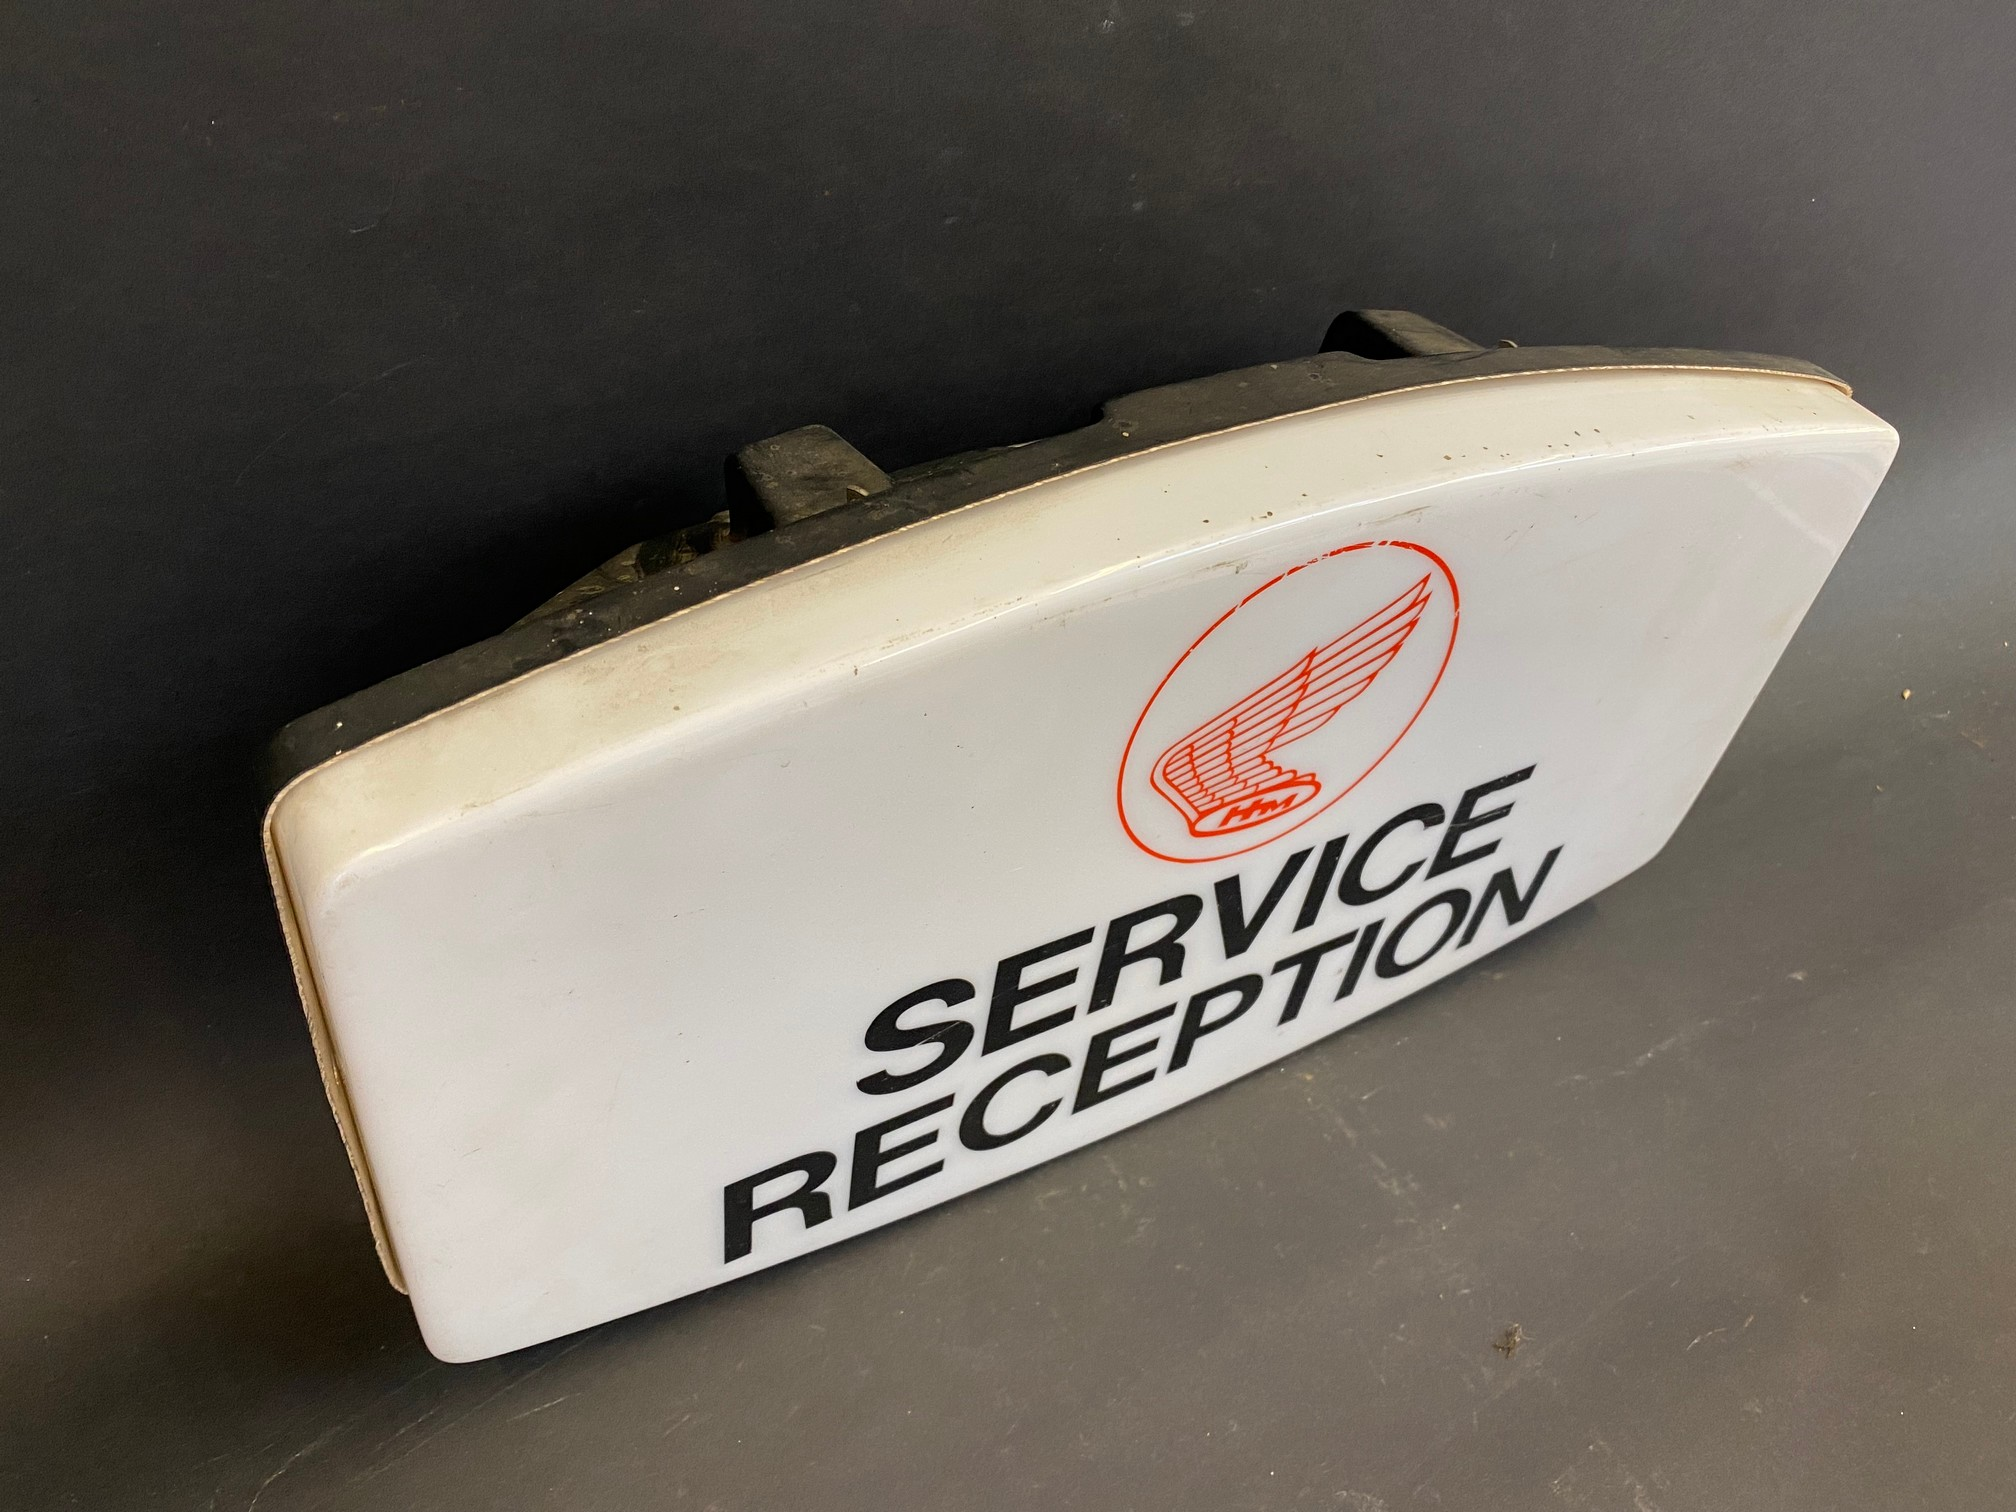 """A late 1960s/early 1970s Honda Motorcycles 'Service Reception' showroom illuminated sign, 18"""" wide x - Image 2 of 3"""